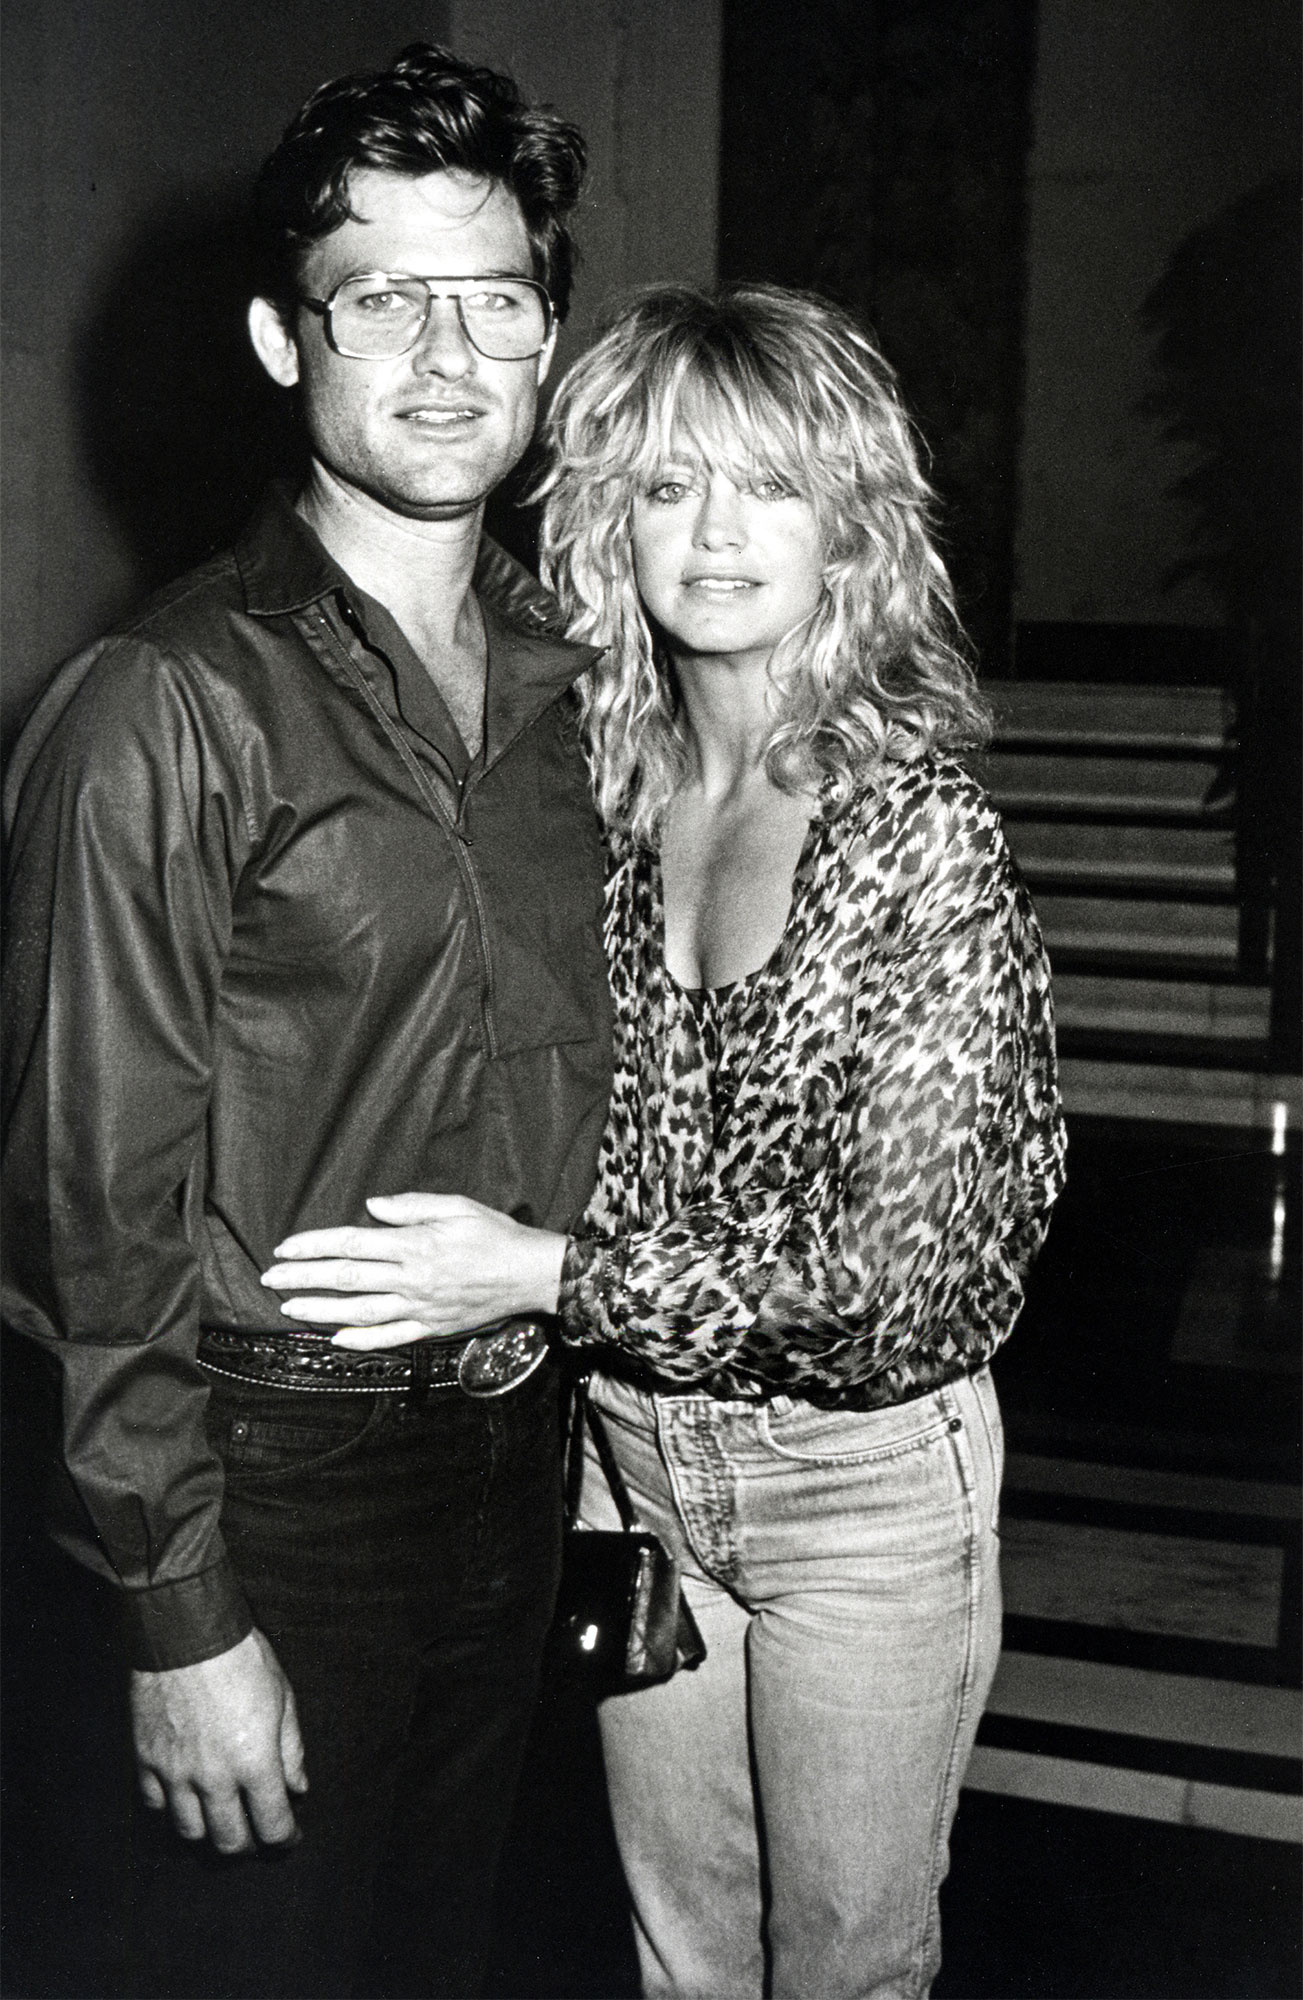 Goldie Hawn and Kurt Russell Sighting at the Carlyle Hotel - July 28, 1983